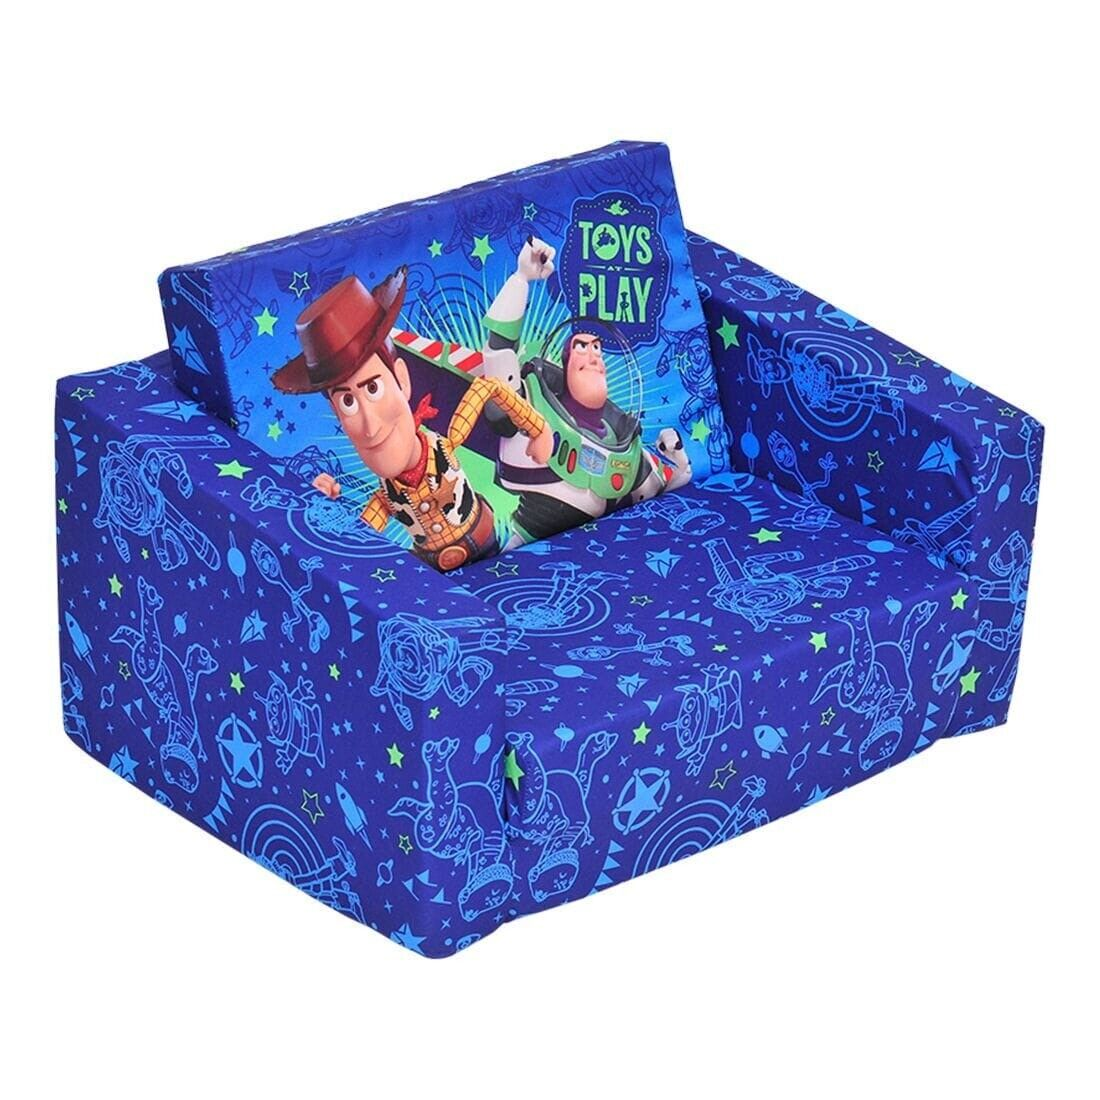 Enjoyable Details About New Disney Pixar Toy Story Kids Flip Out Sofa Bed Lounge Bedroom Birthday Gift Gmtry Best Dining Table And Chair Ideas Images Gmtryco